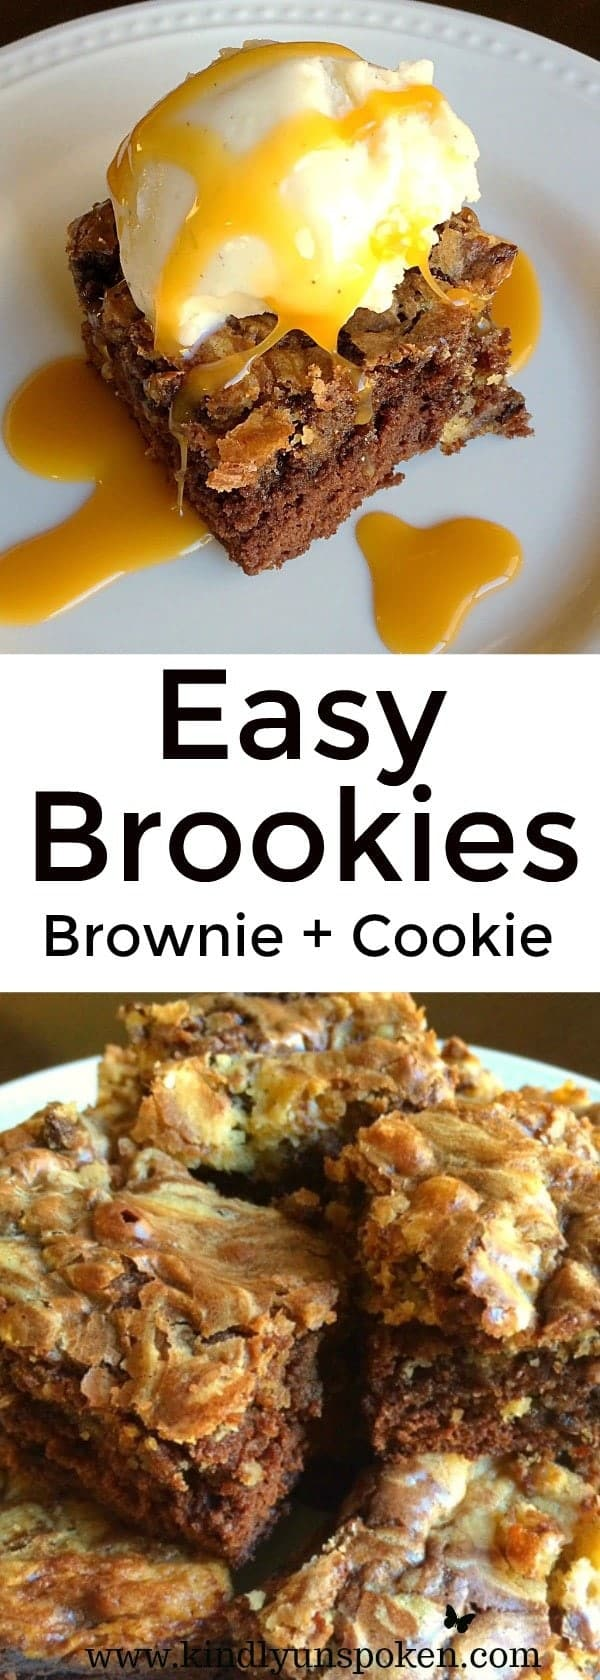 These are the best brookies ever and so easy to make! Made with a simple boxed brownie mix and my Mom's famous chocolate chip cookie dough, these chocolate chip brookies are a match made in heaven! #brookies #dessert